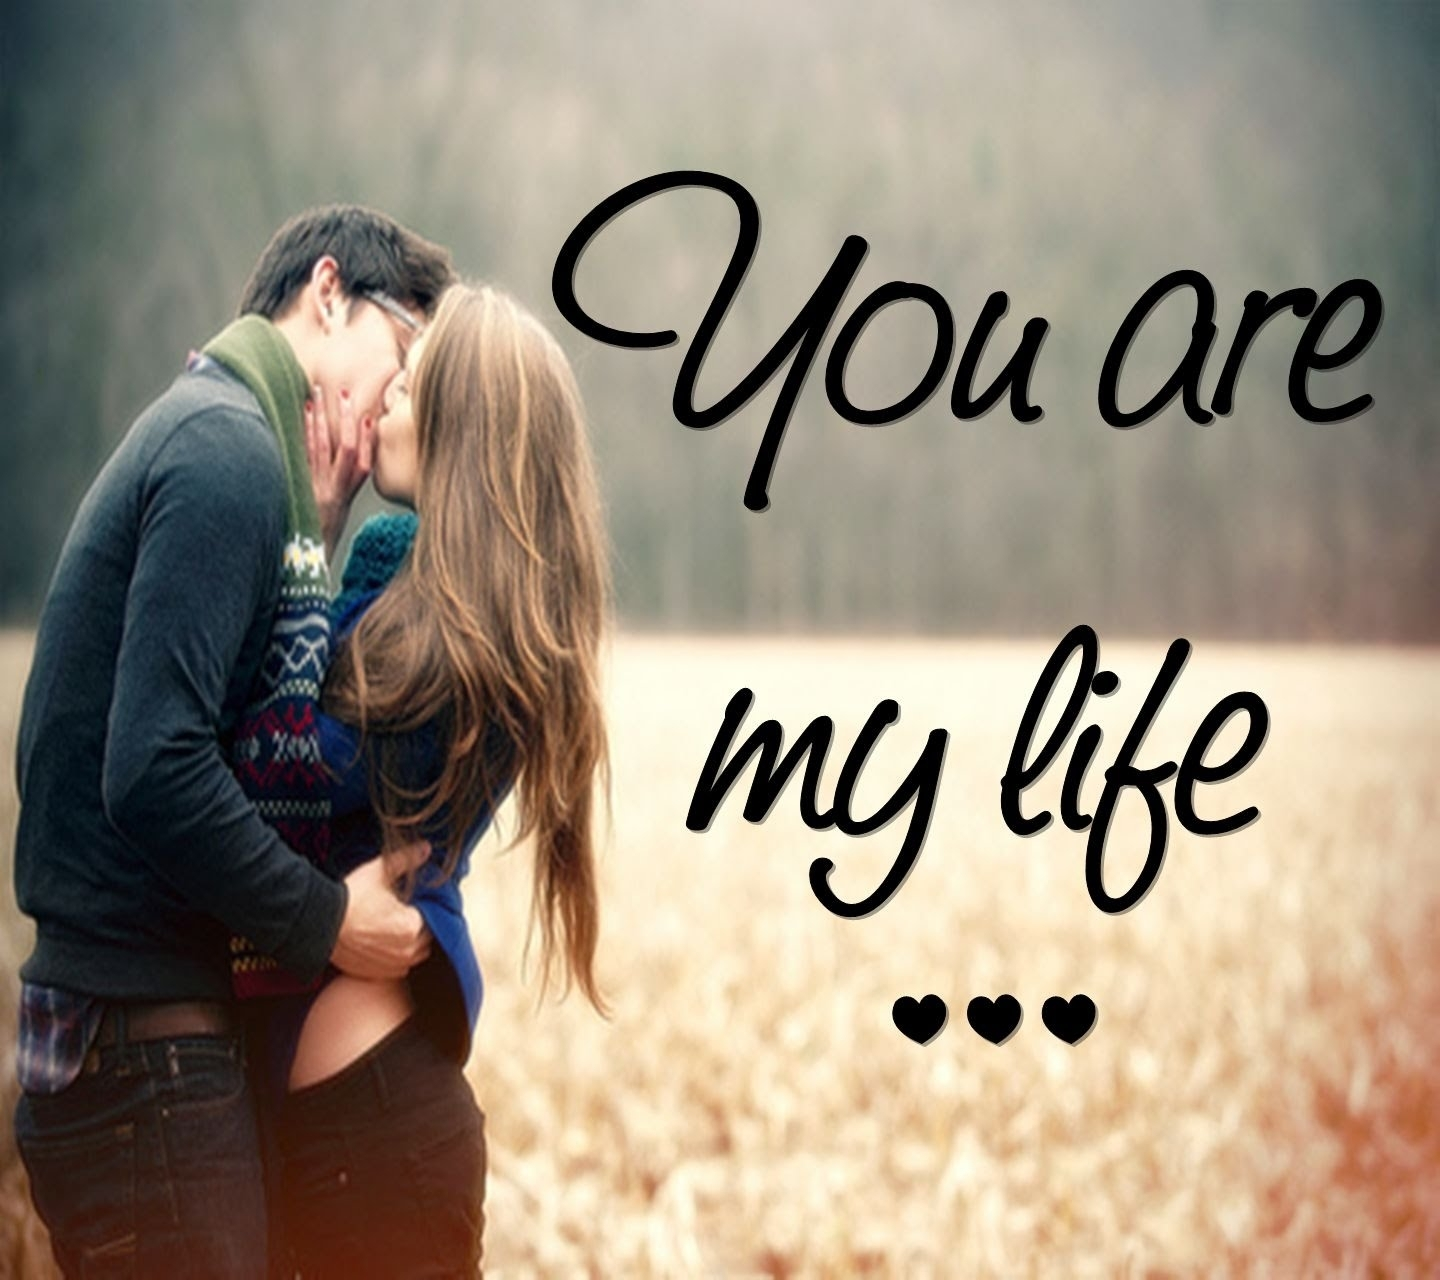 Punjabi Love Quotes For Girlfriend Status For Whatsapp And Facebook